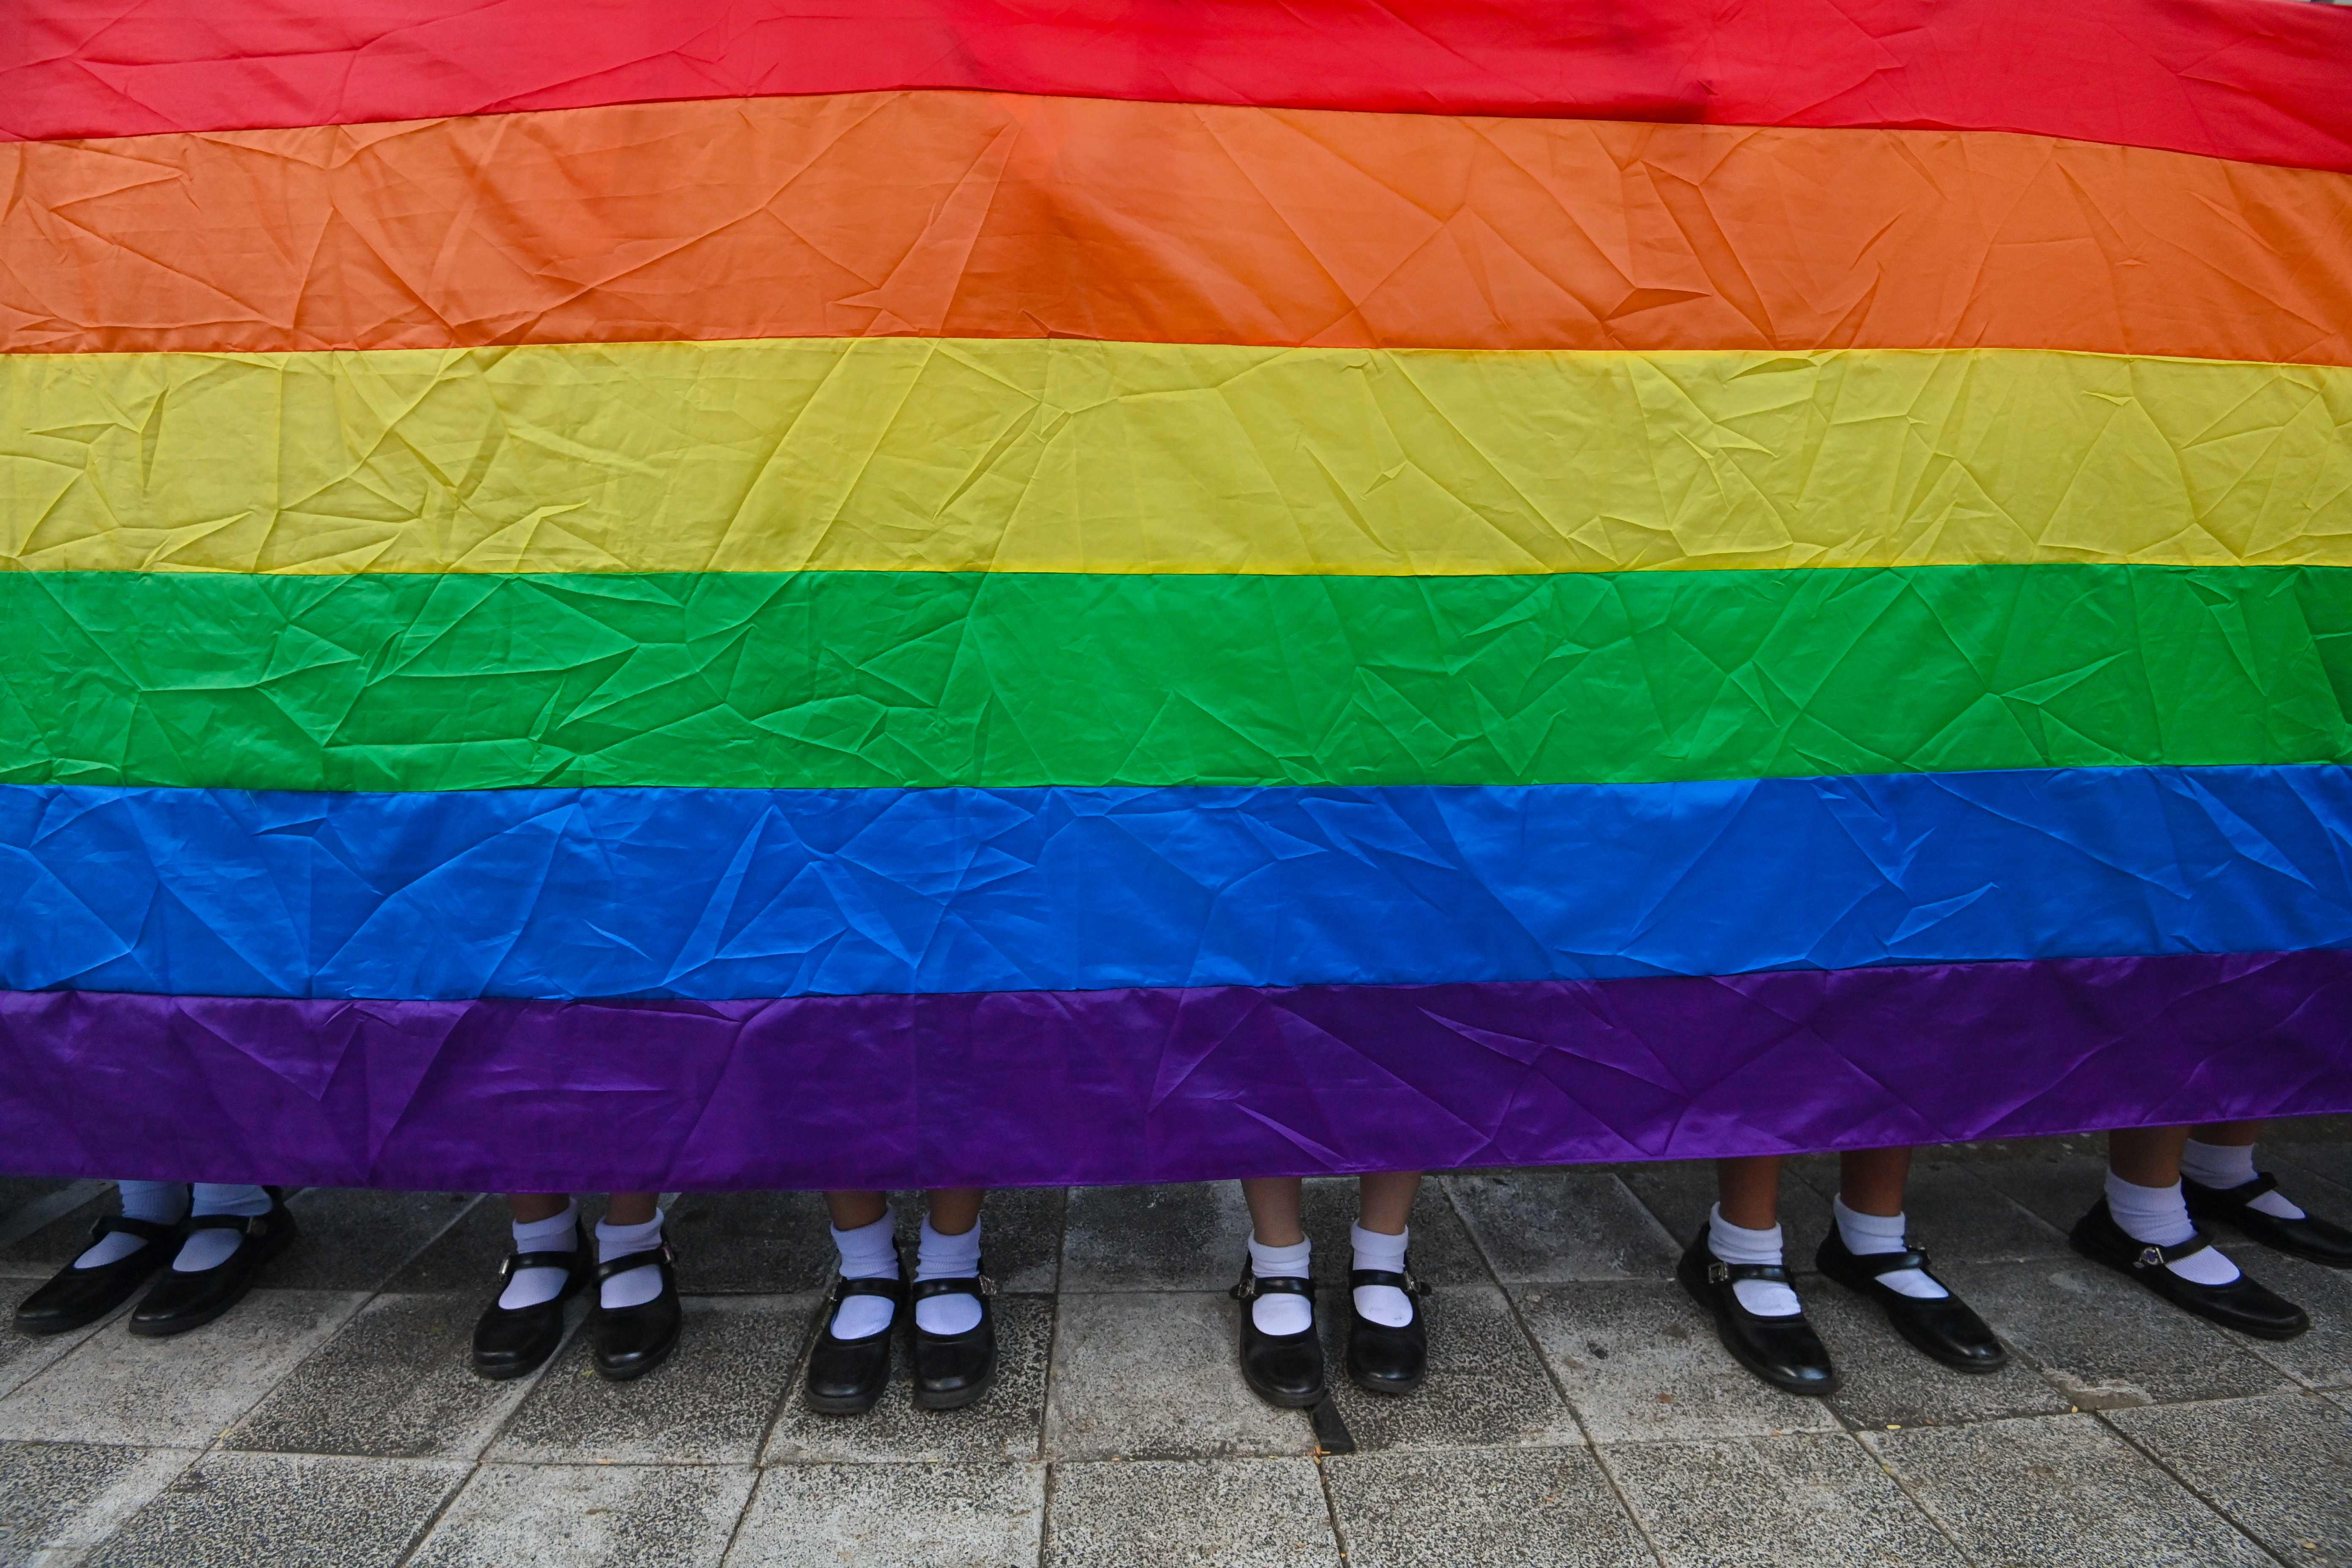 LGBTQ students need inclusive sex ed – but less than 10% in US are receiving it, report says